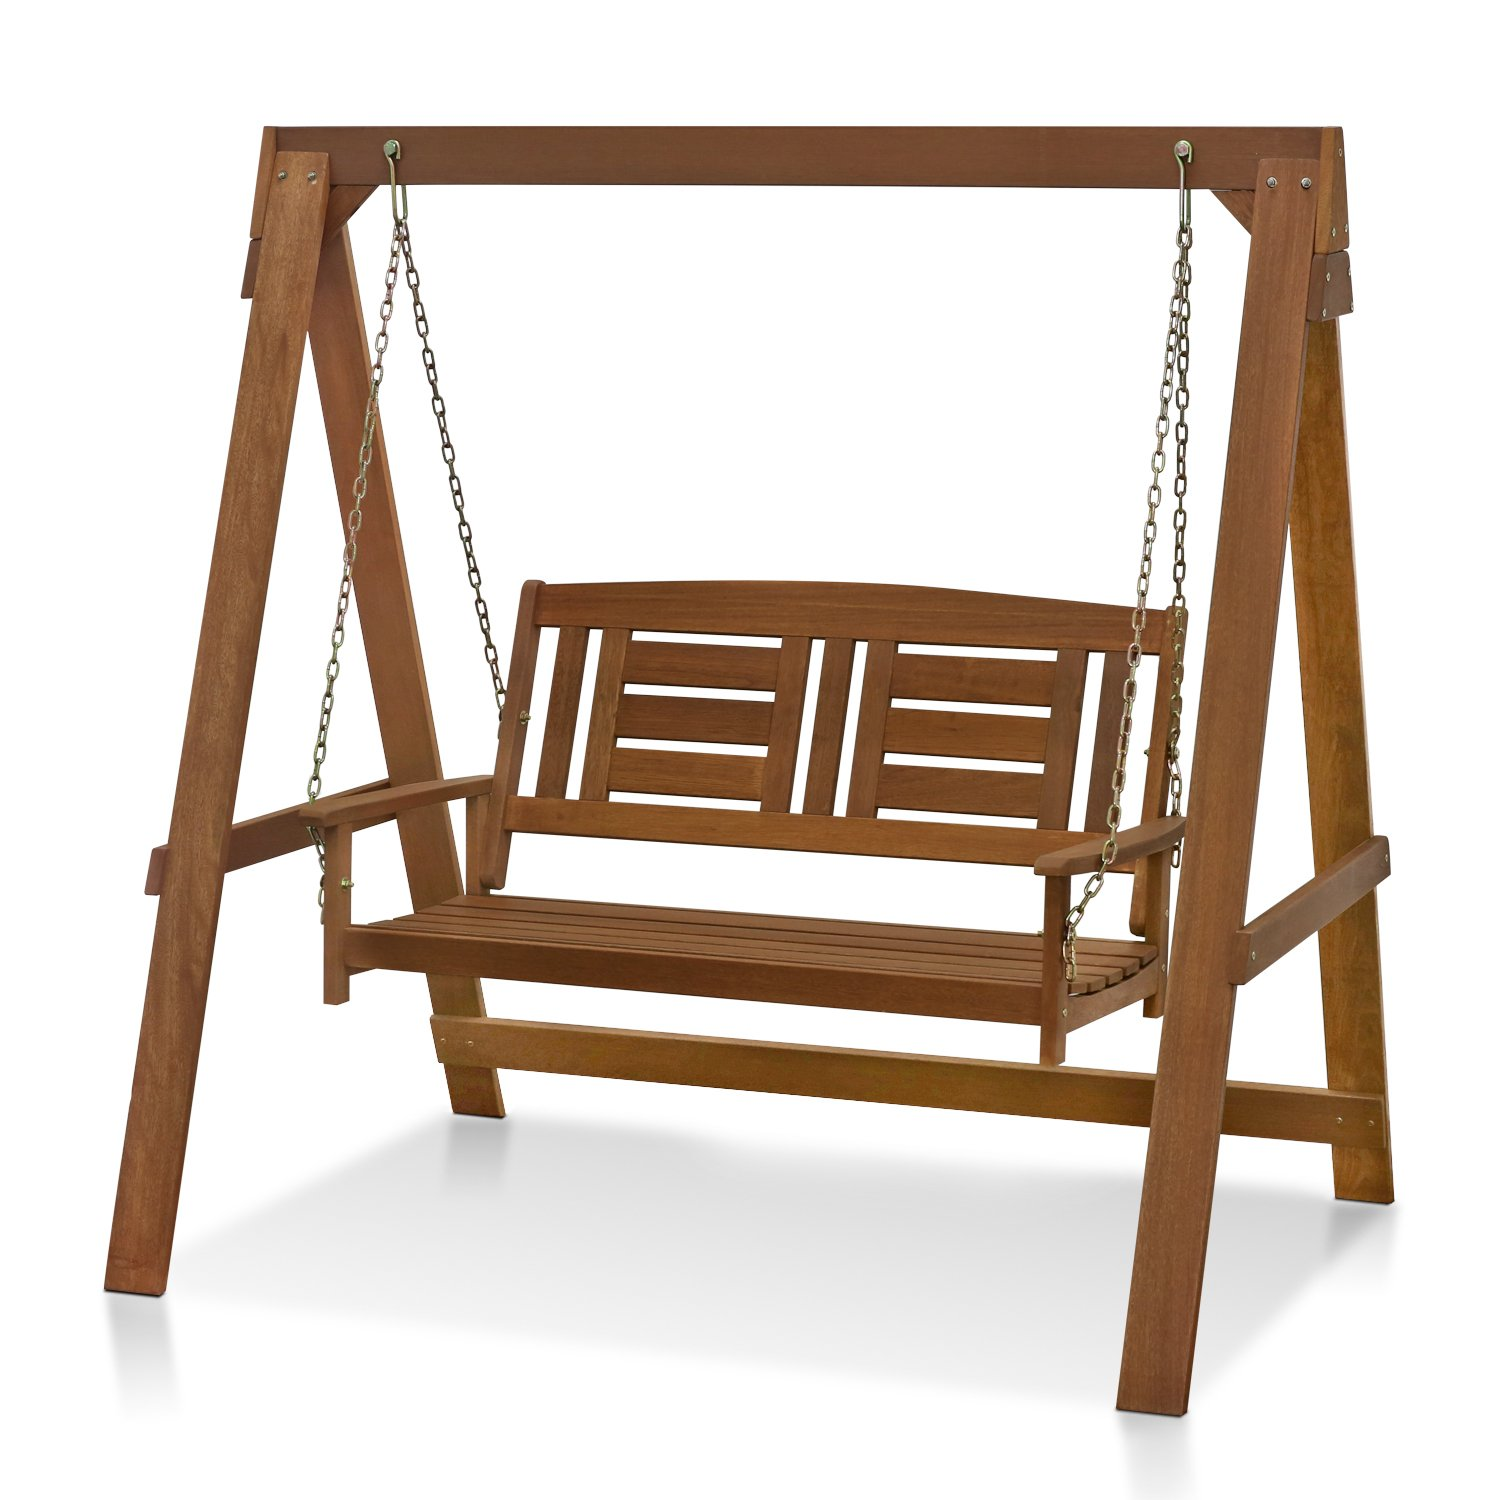 Furinno FG16409 Tioman Hardwood Patio Furniture Porch Swing with Stand in Teak Oil, 2-Seater with Frame, Natural by Furinno